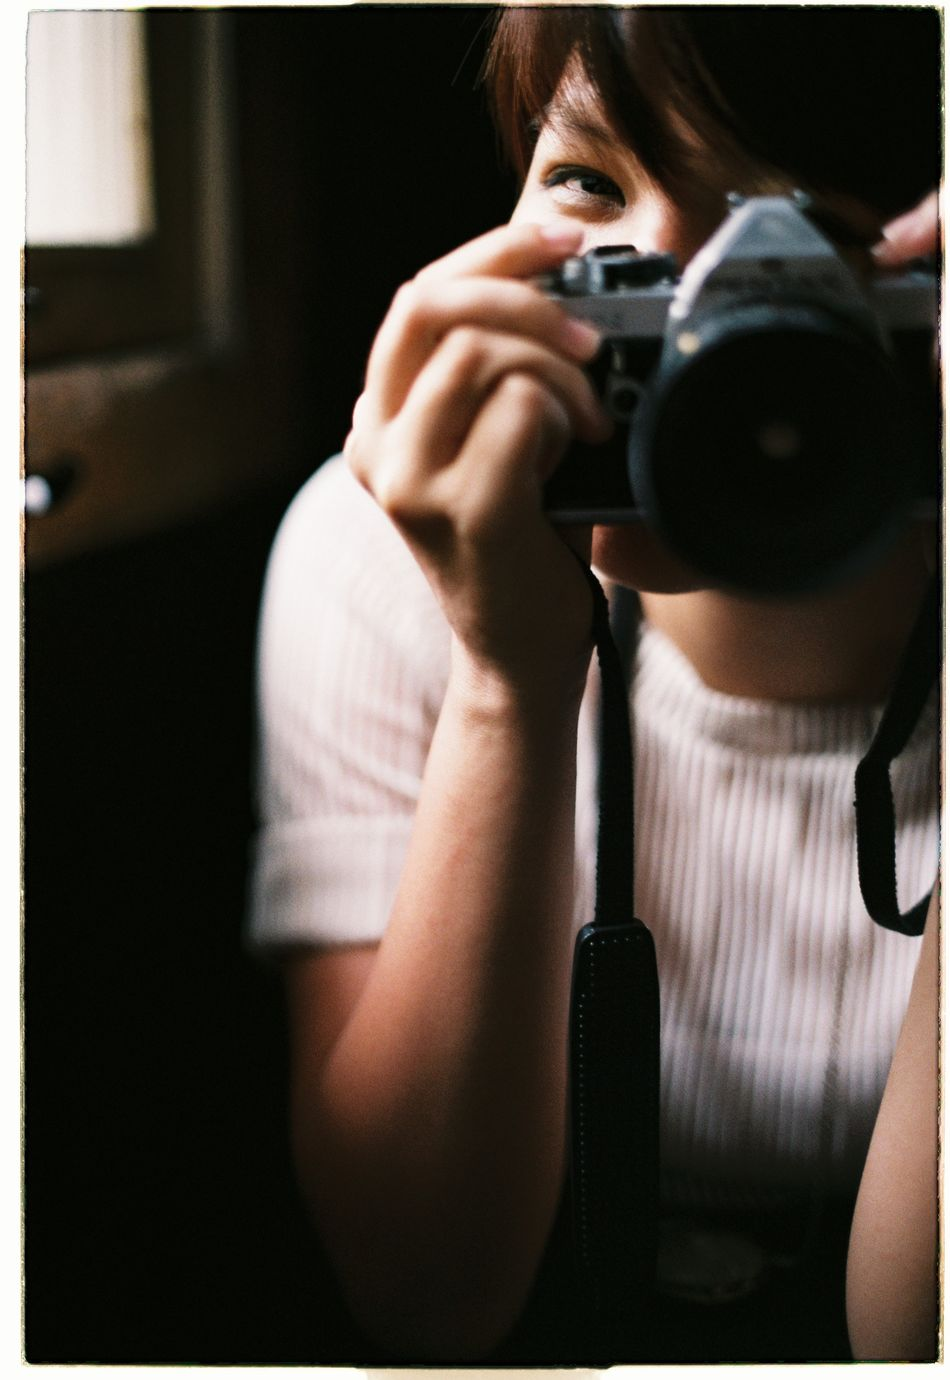 Camera Camera Girl Eye Eyes Are Soul Reflection Girl Happy Happy Girl  Photographer Photographing Portrait Portrait Of A Woman Shy Shygirl Smile Smiling Eye Smiling Eyes Smiling Girl Smiling Girls Woman Woman Portrait Women Who Inspire You Young Adult Young Woman Young Women